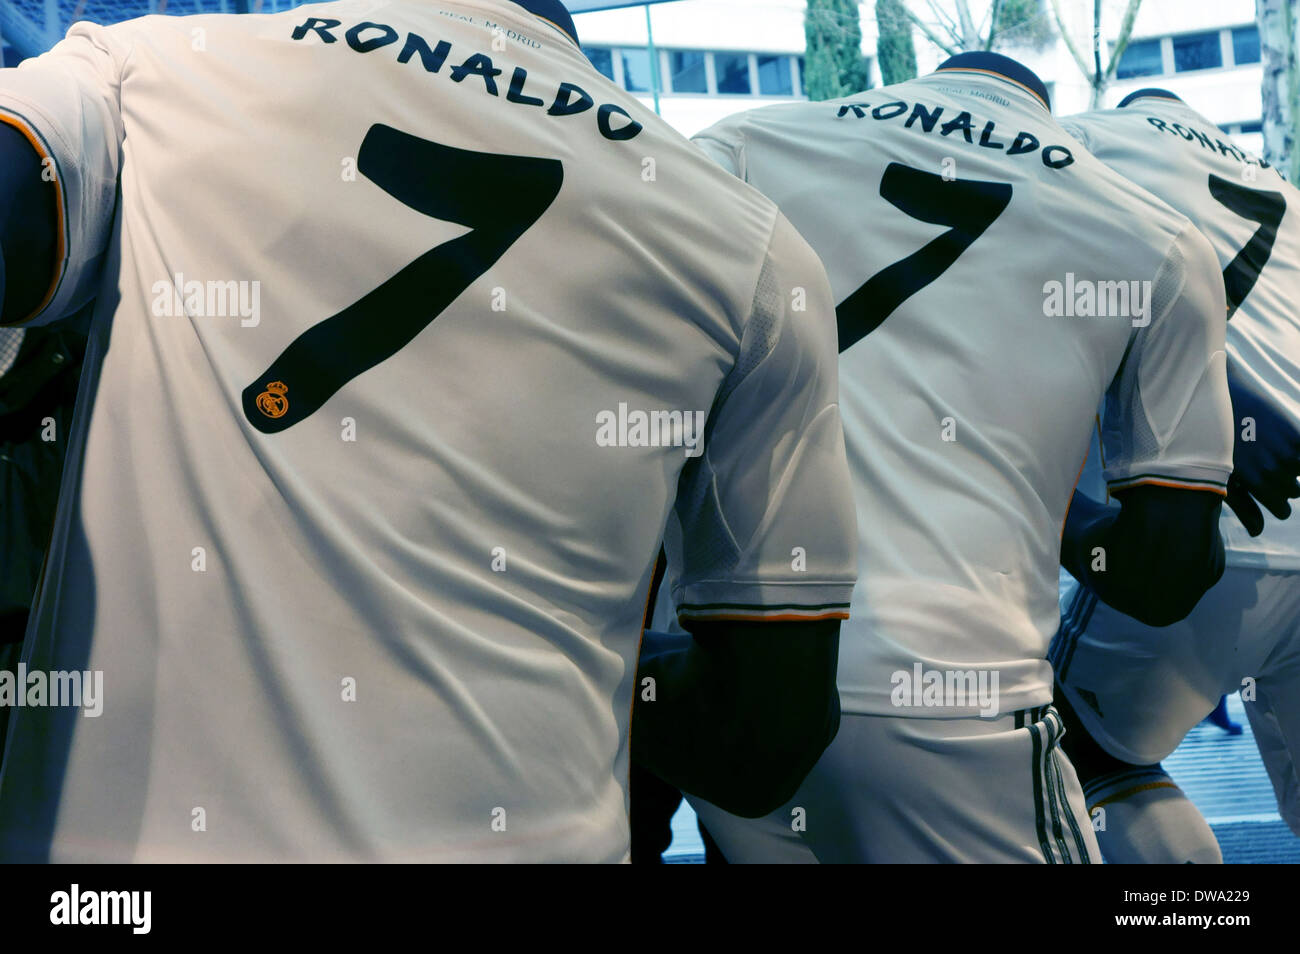 new style 33aa1 d9c58 Real Madrid Replica Kit Stock Photos & Real Madrid Replica ...